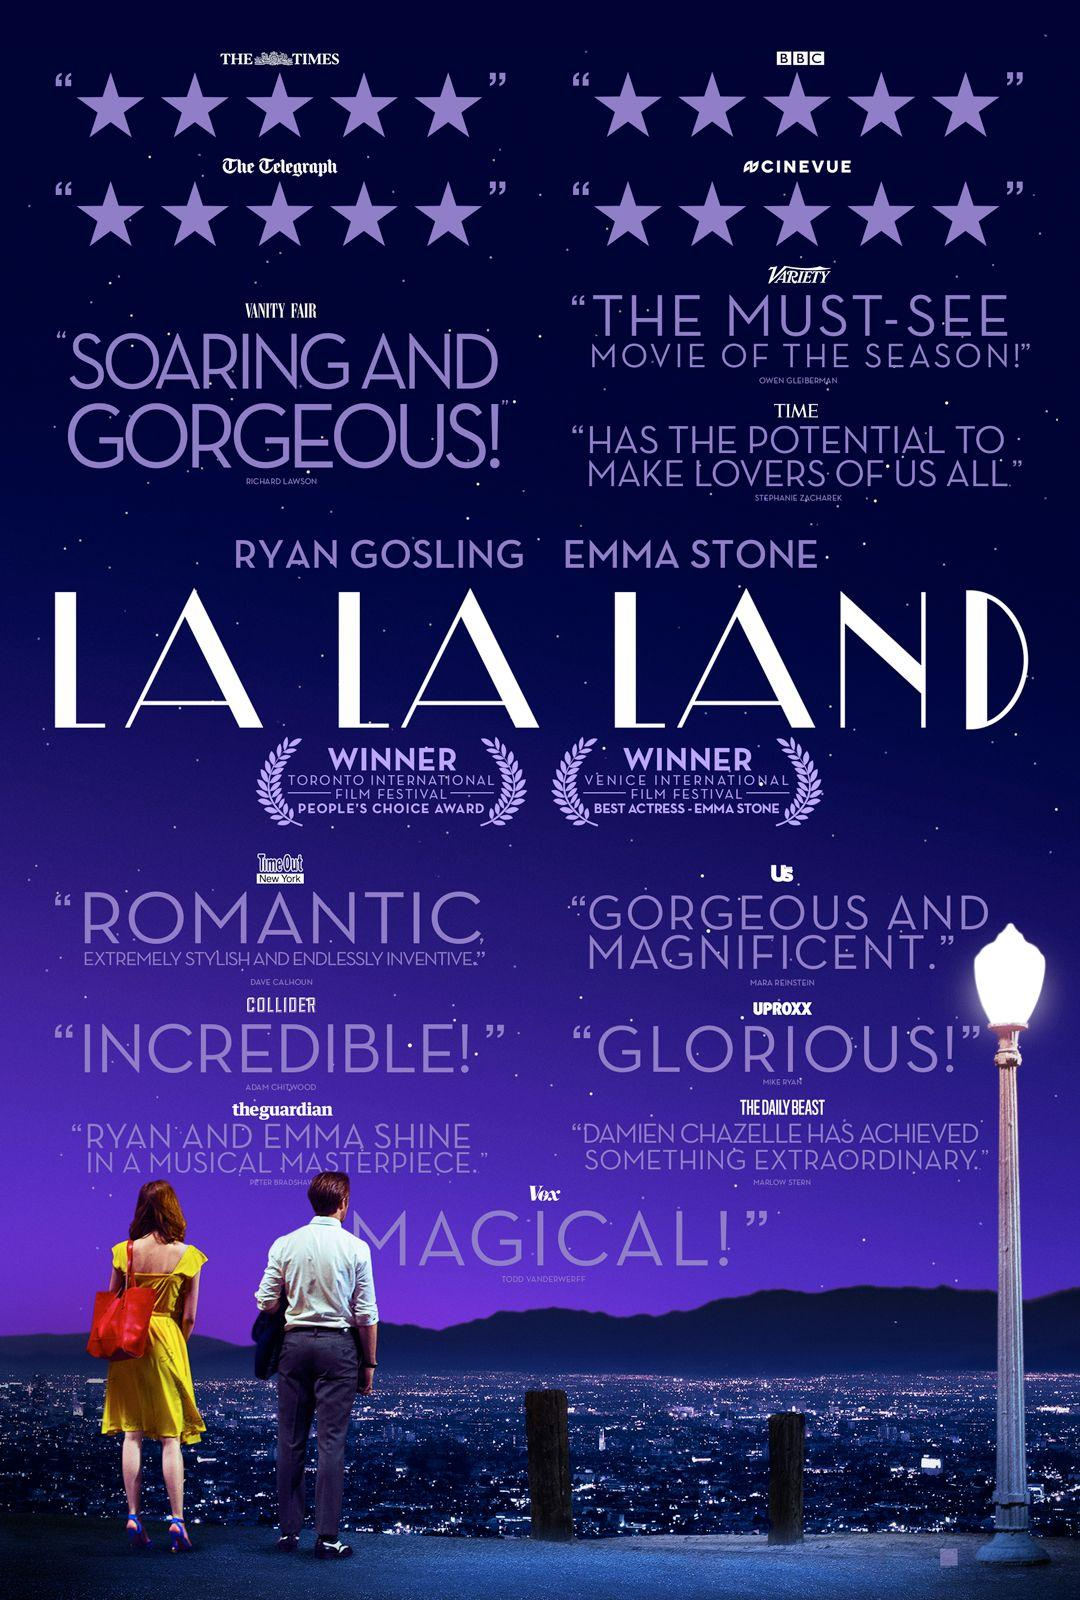 La La Land was a great movie...if you're looking to take a good nap. (Image courtesy of http://www.lalaland.movie)